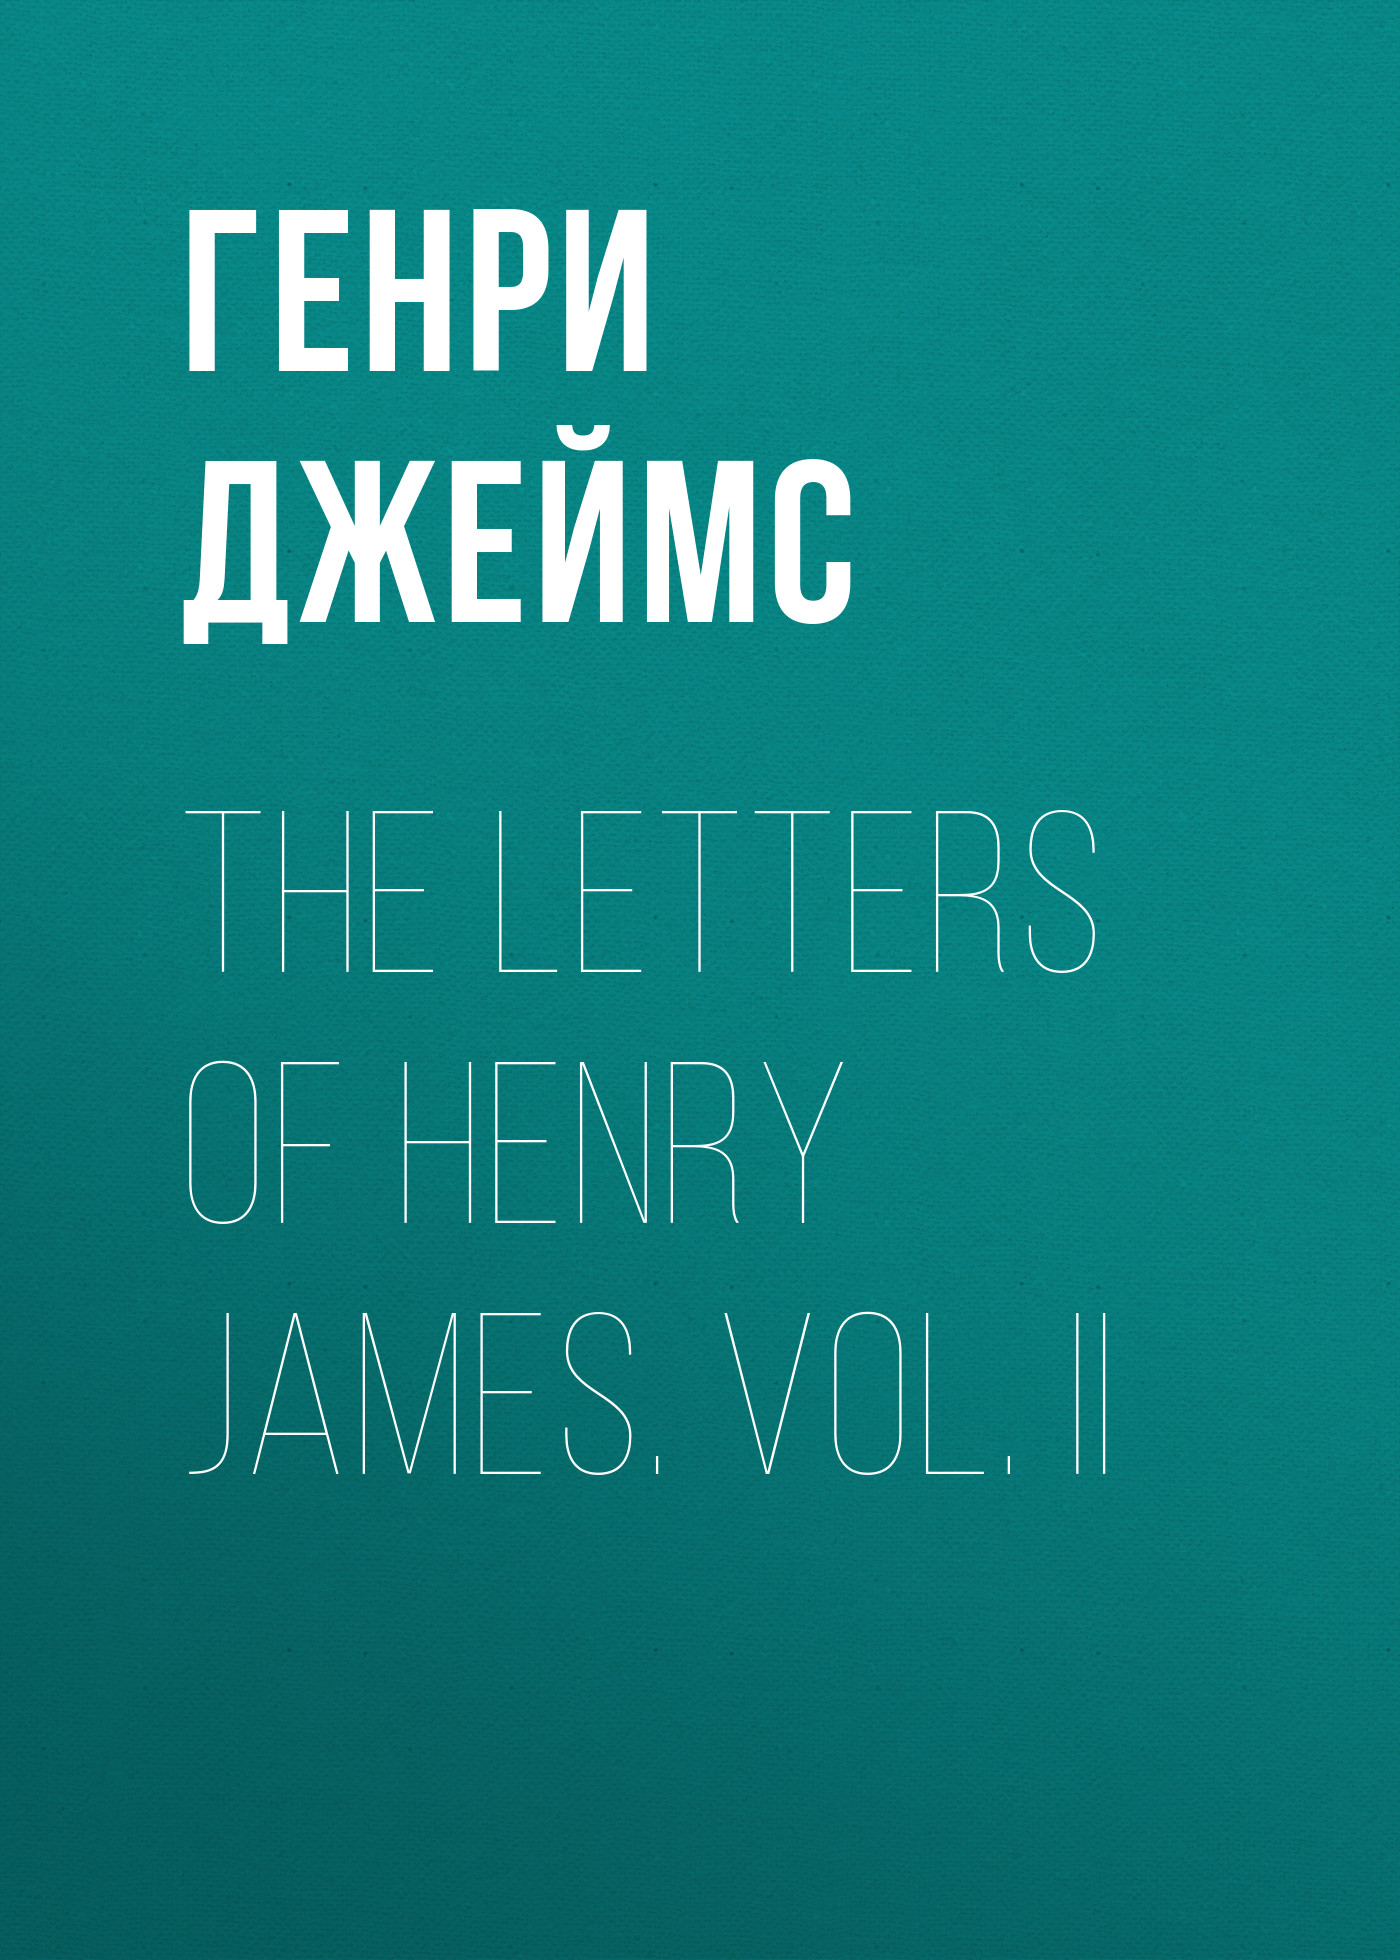 Генри Джеймс The Letters of Henry James. Vol. II boys winter jacket camouflage coats hooded down coat fur collar overcoat cotton snowsuit teenages outerwear wua791702